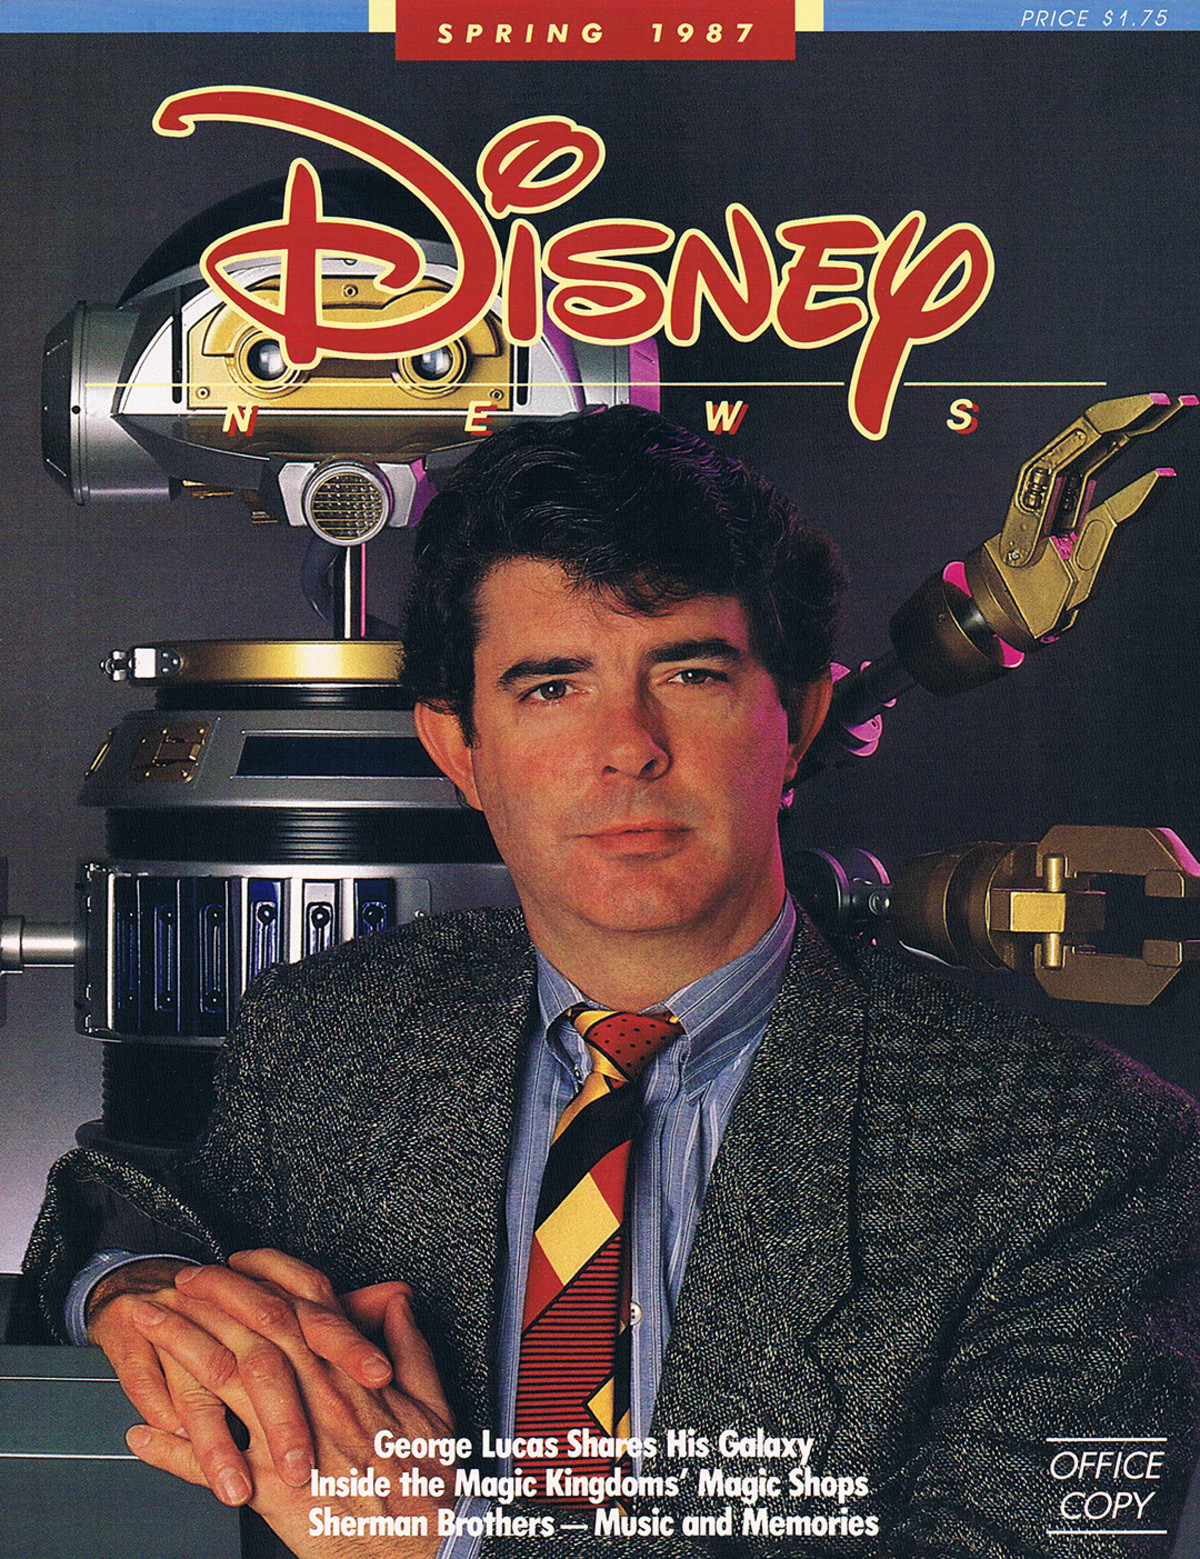 Cursed image. George Lucas without a beard.. That is just weird, like seeing Bob Ross without his signature fro and beard. Some things were just not meant for mortal eyes to see.